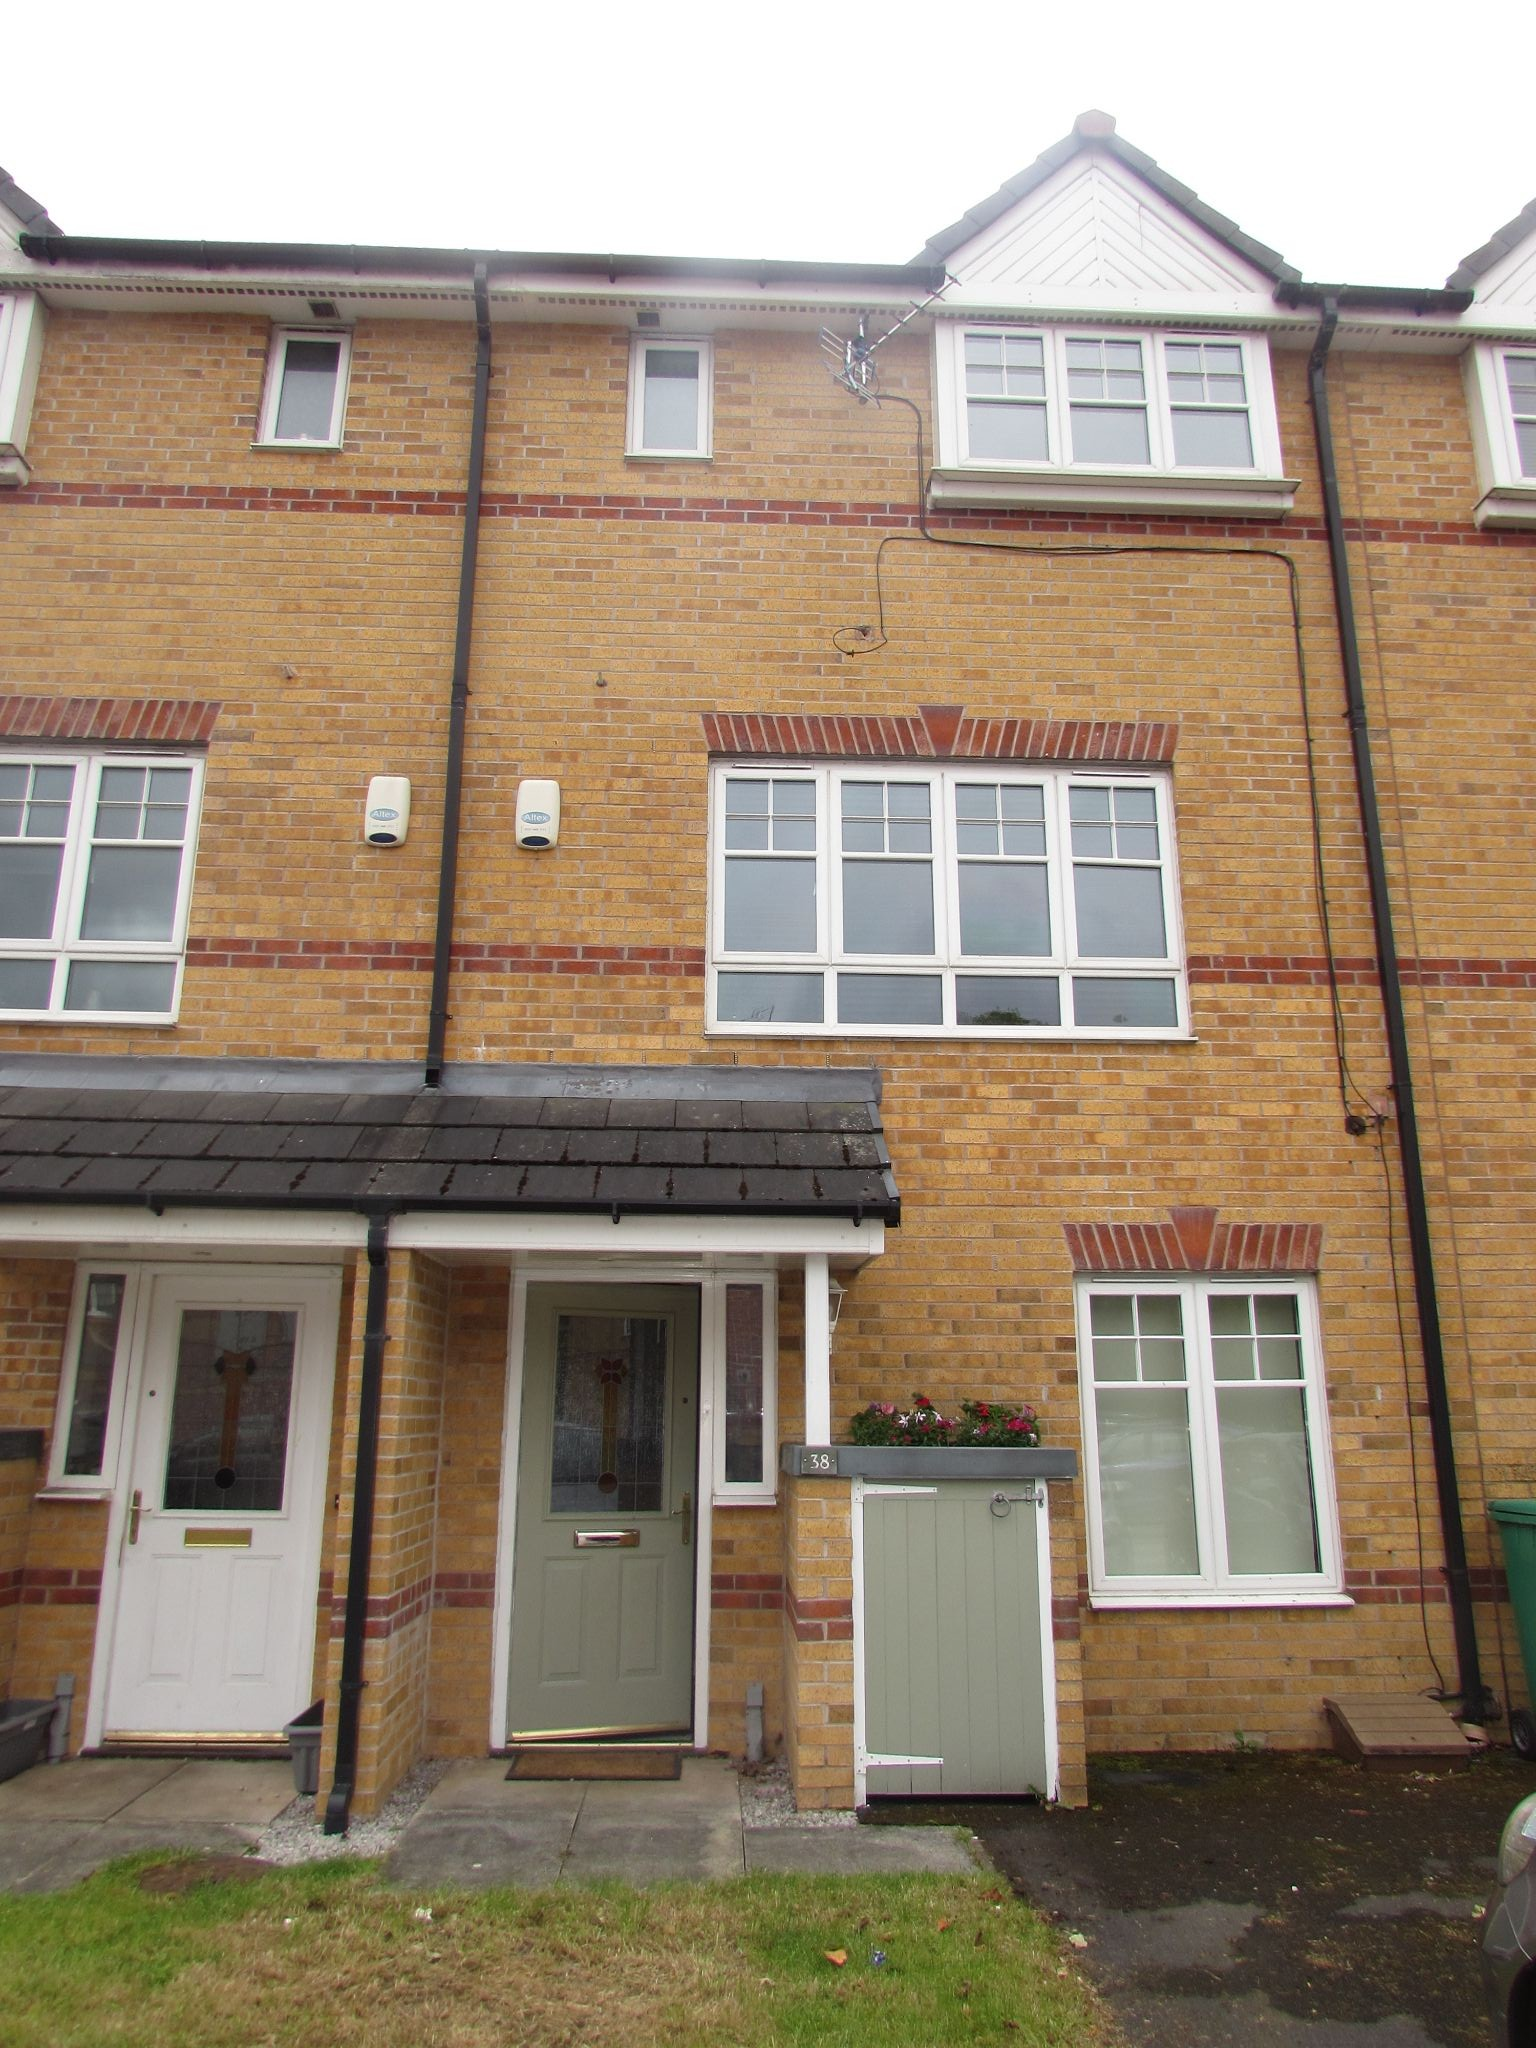 1 Bedroom Mid Terraced House To Rent - Front